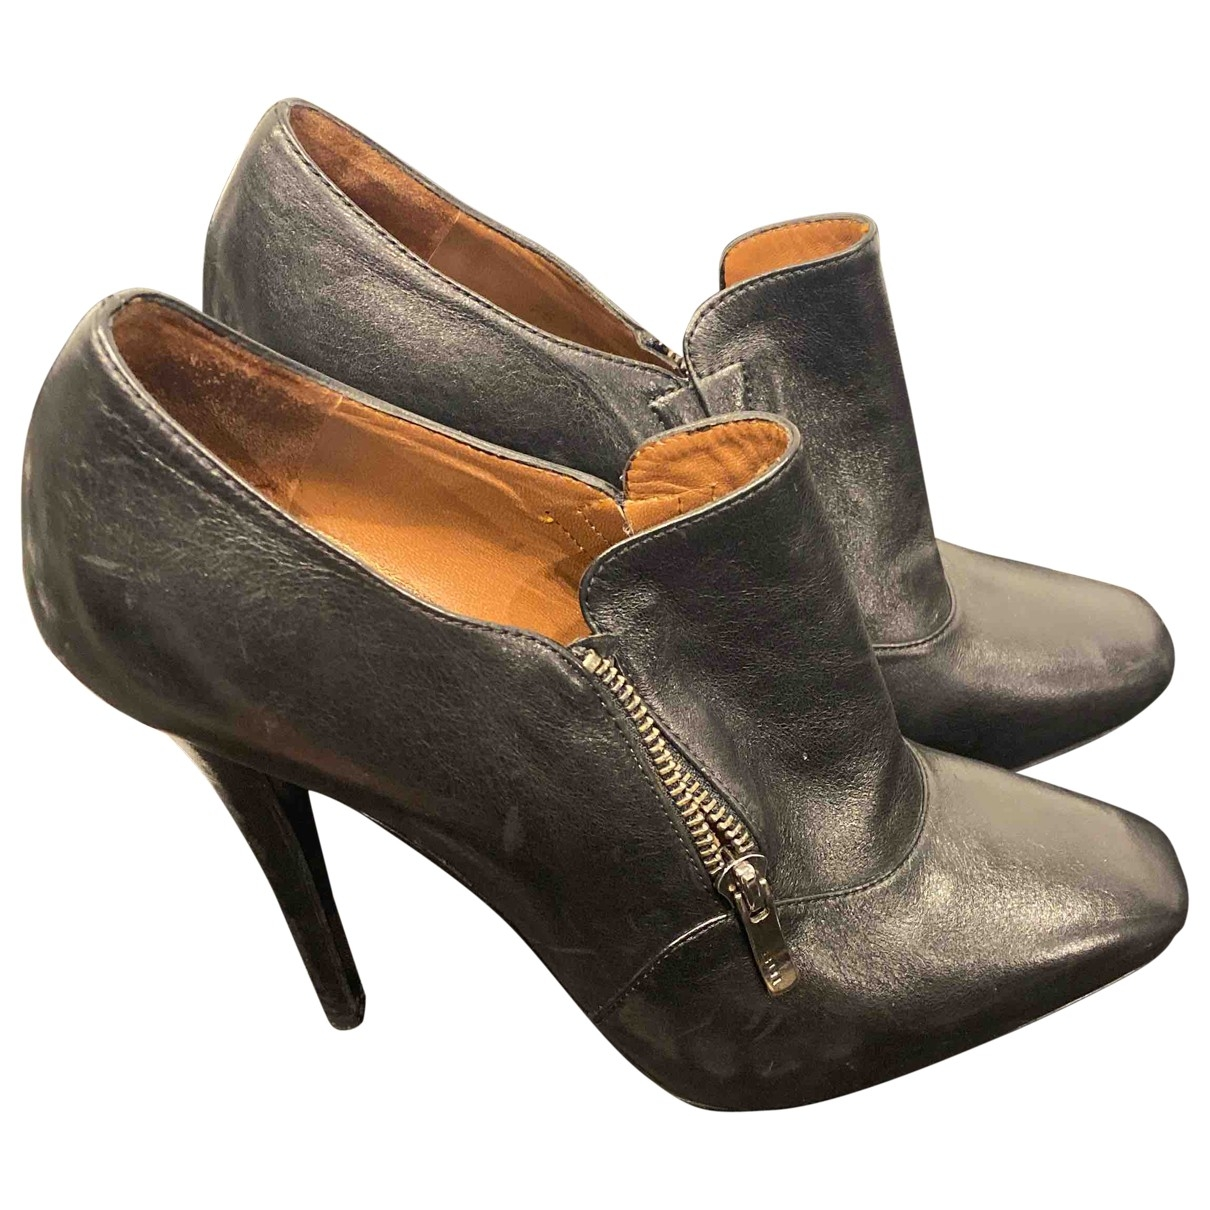 Barbara Bui \N Black Leather Ankle boots for Women 39.5 EU